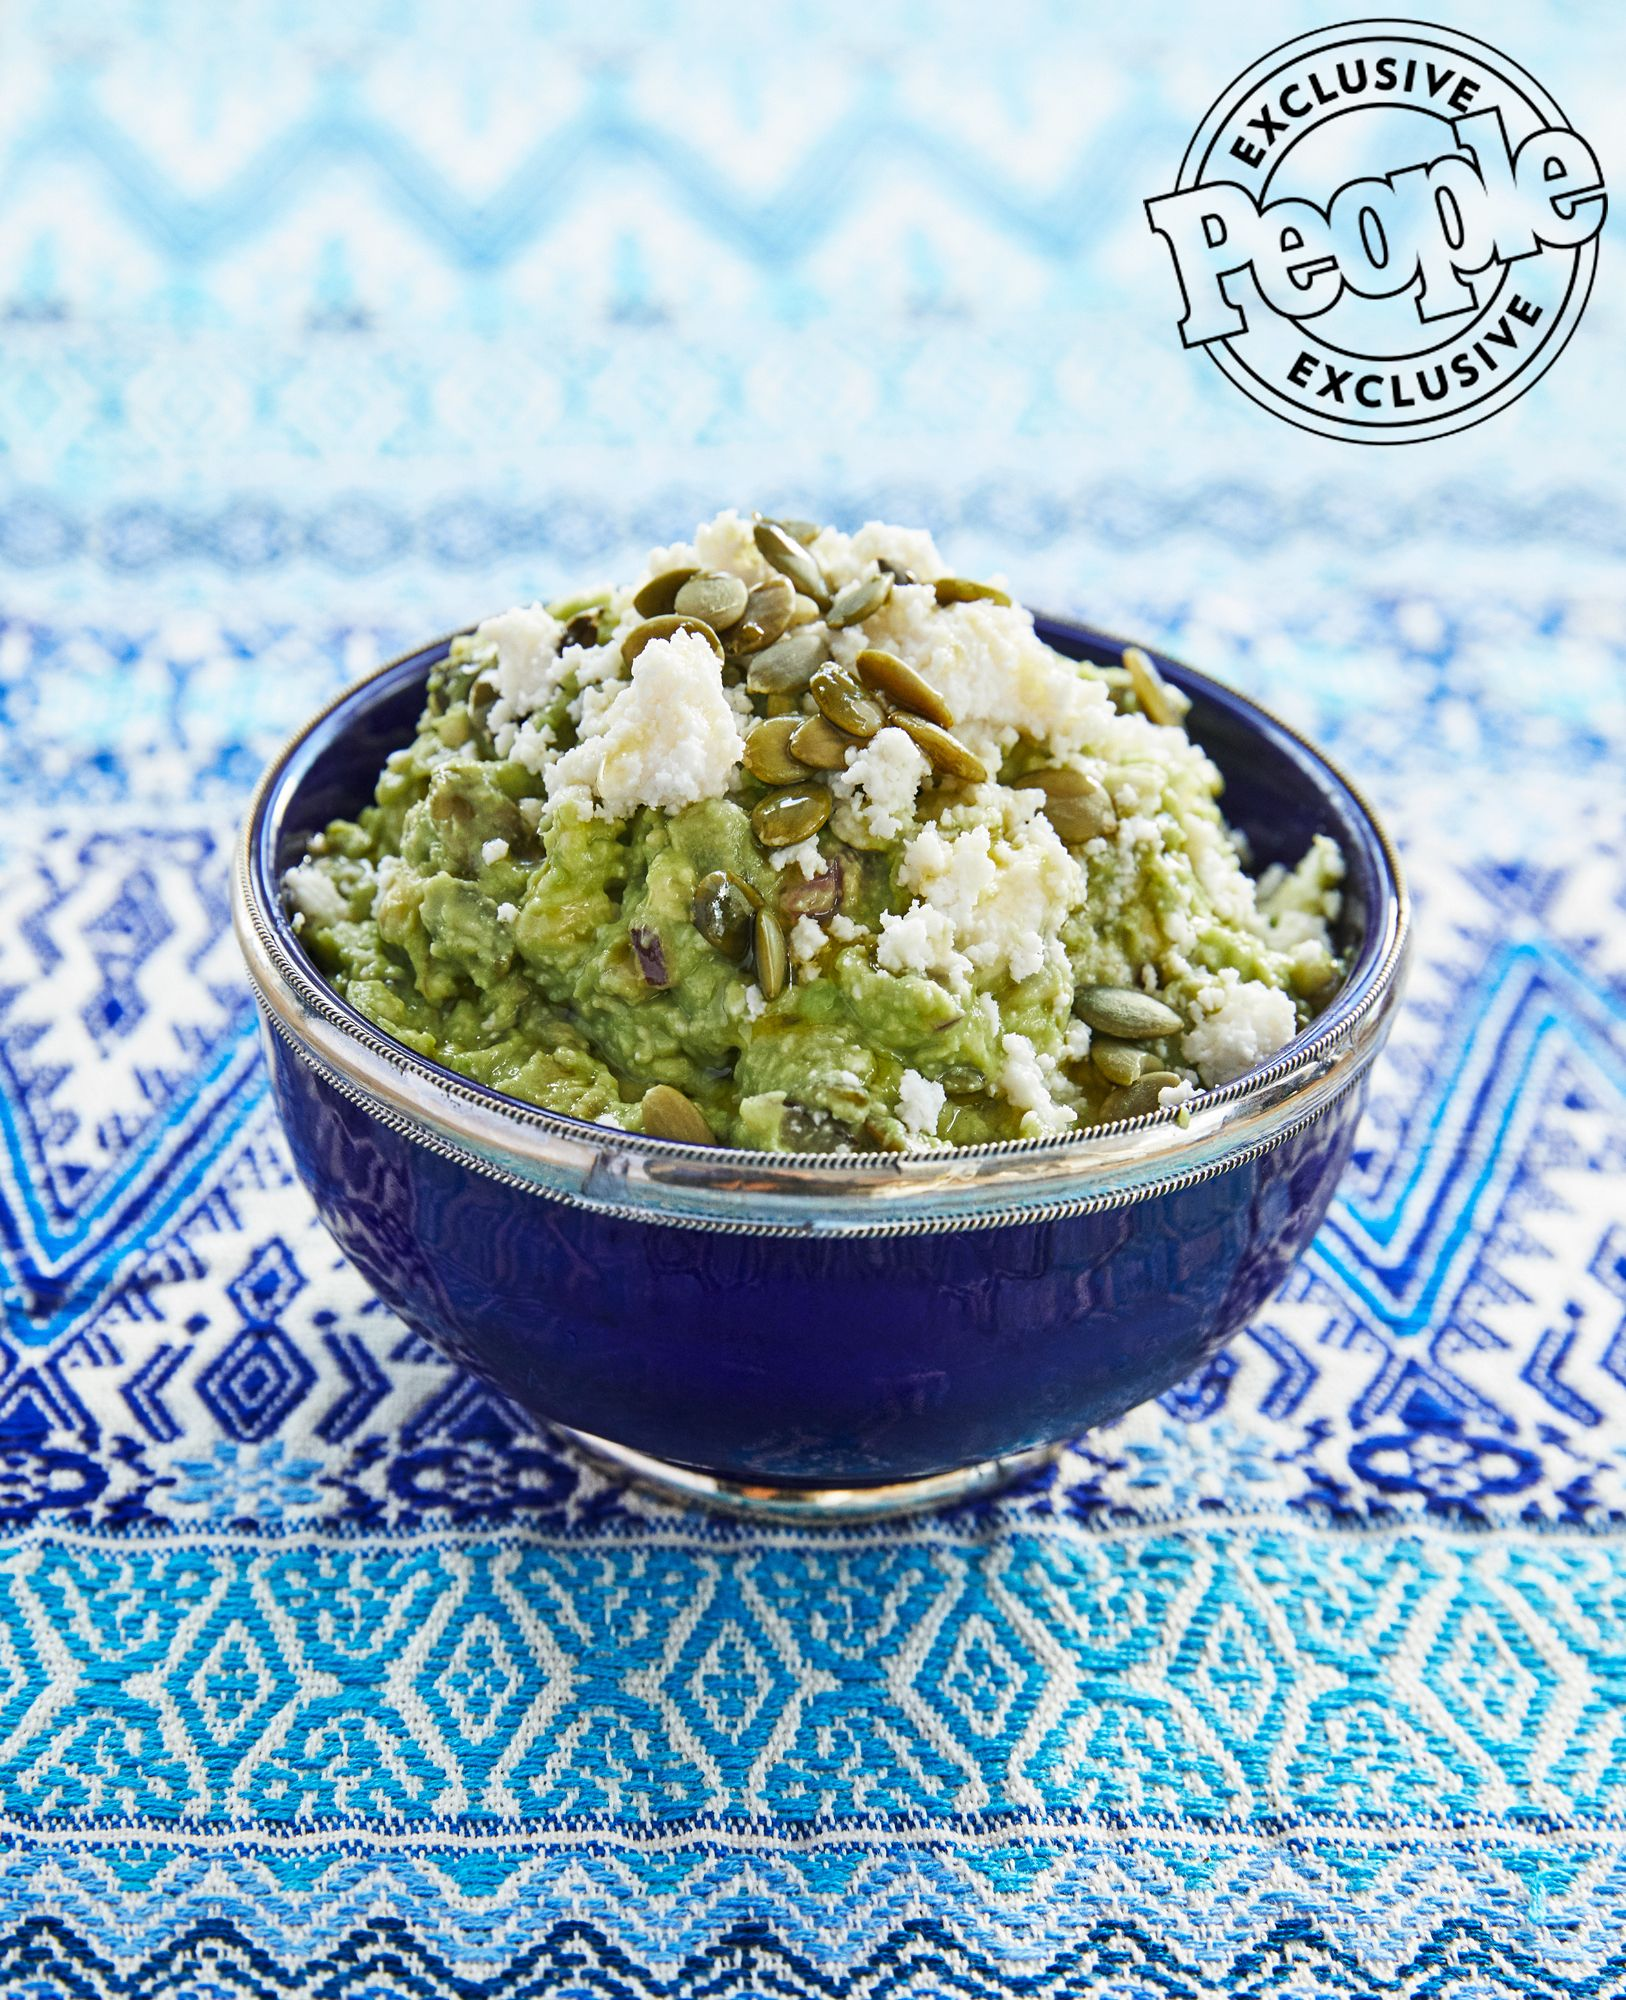 Marcela valladolid shares her best guacamole recipes for an marcela valladolid shares her best guacamole recipes for an instant summer party forumfinder Image collections